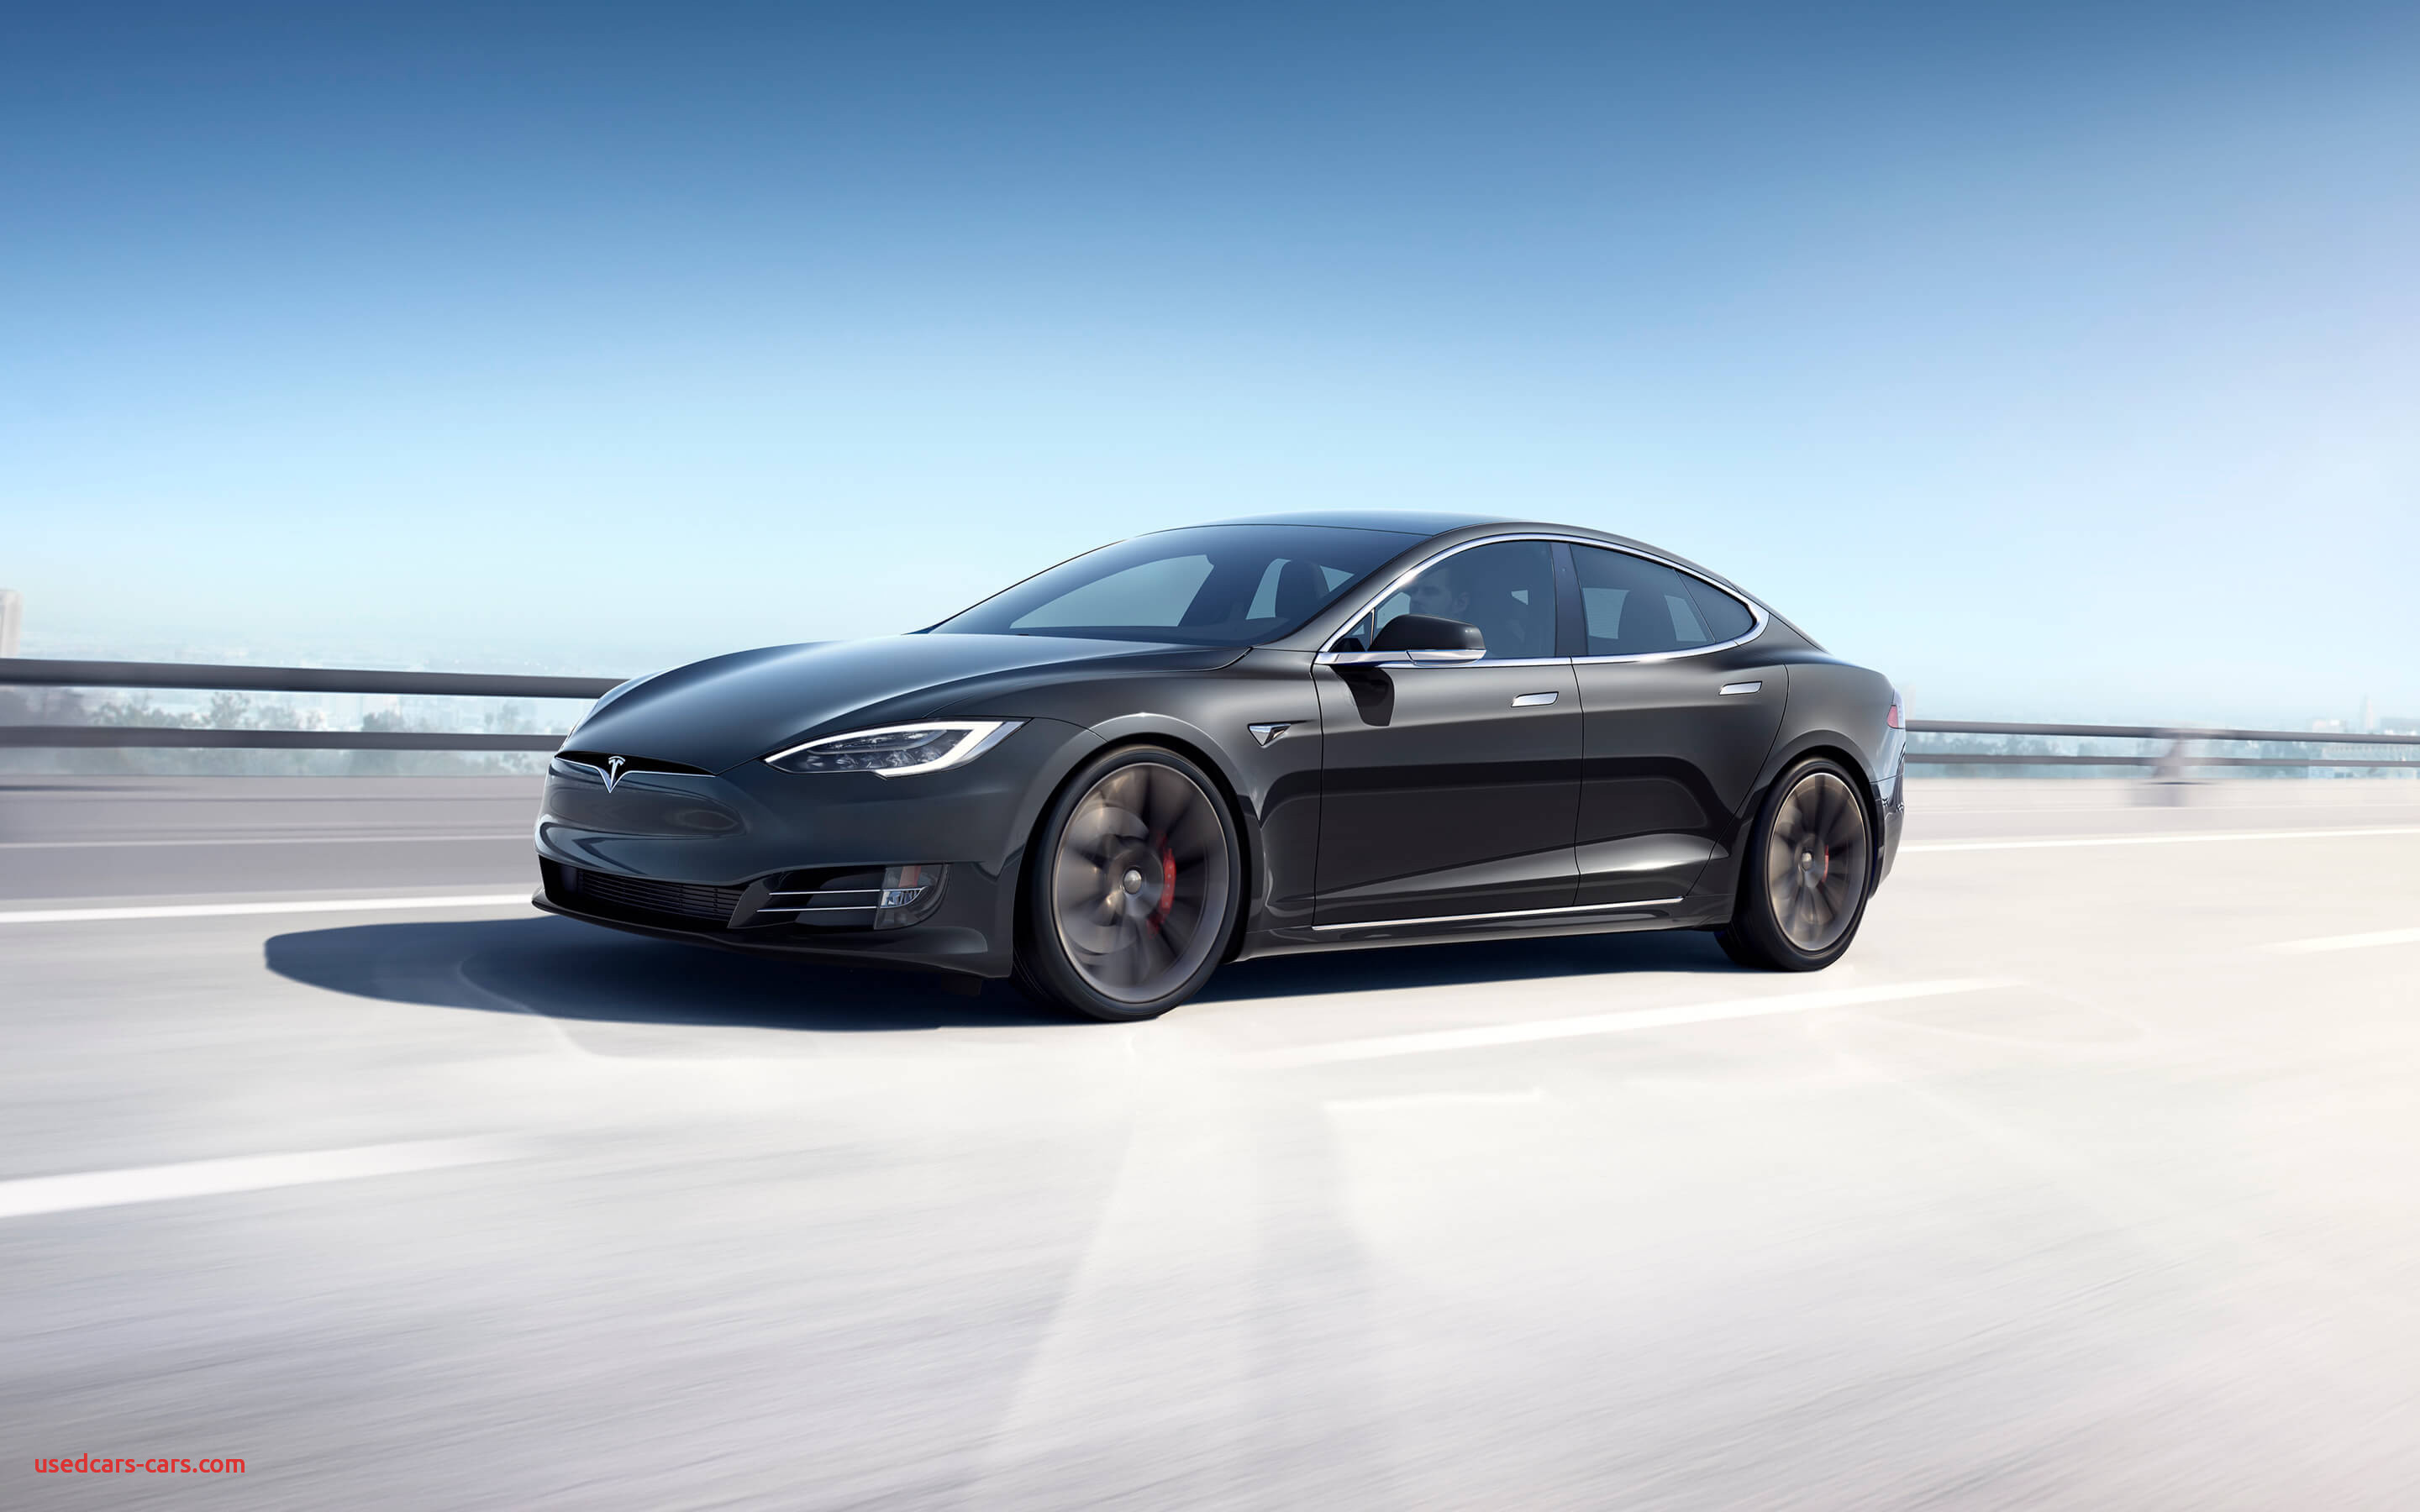 Used Tesla How Much New How Much is A Tesla Model 3 Beautiful Model S